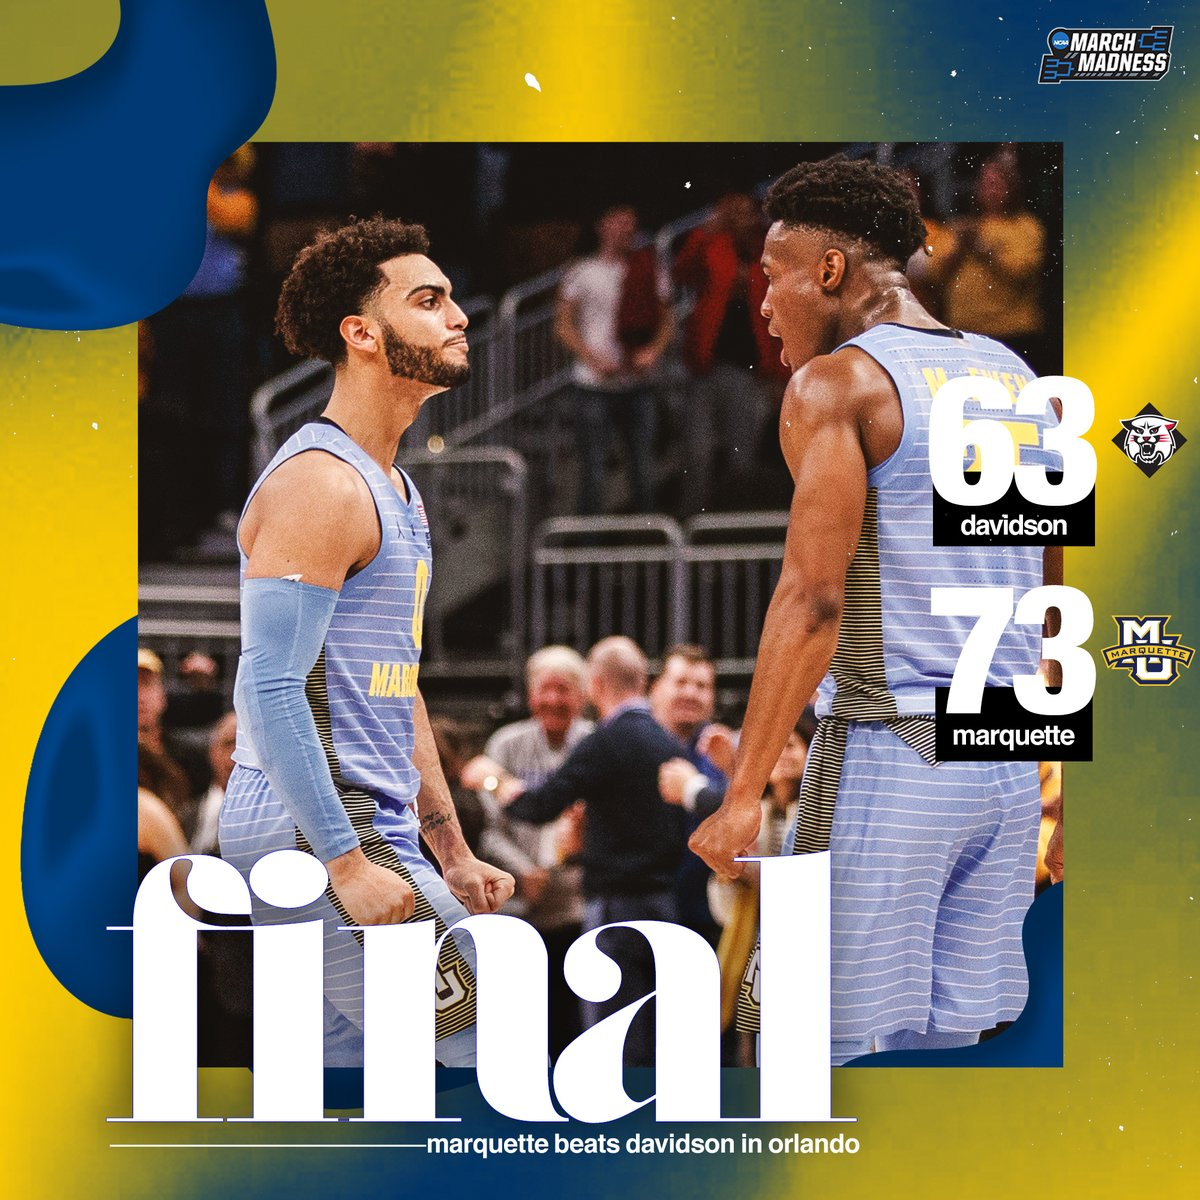 @marchmadness's photo on #mubb